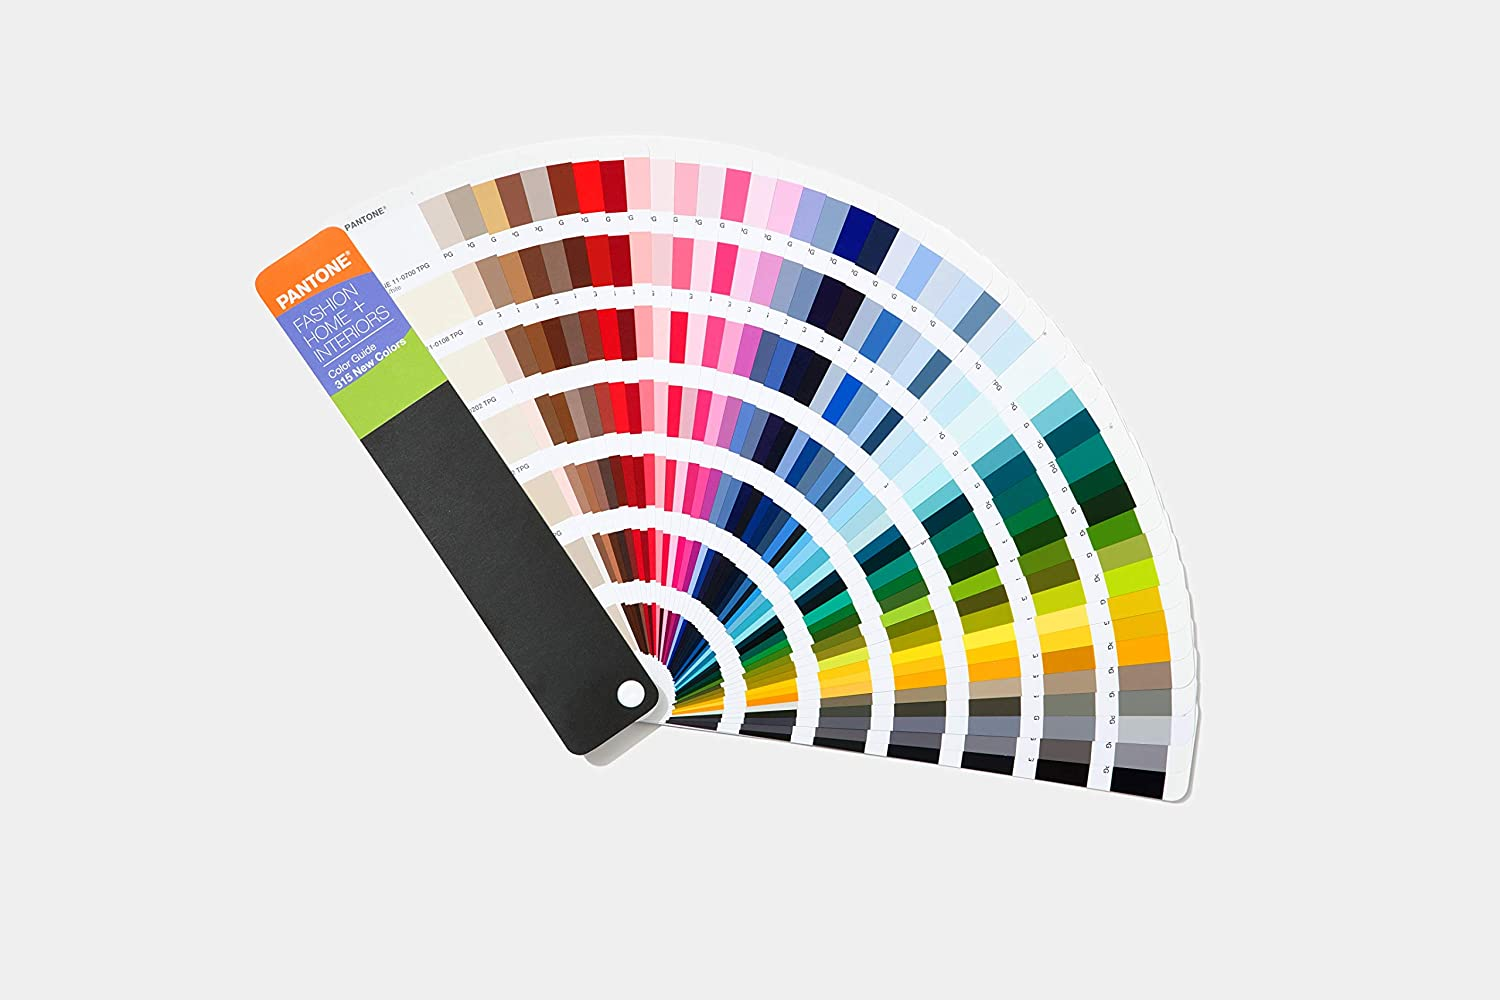 Pantone Color Guide Supplement for Fashion, Home & Interiors - 2020 Edition